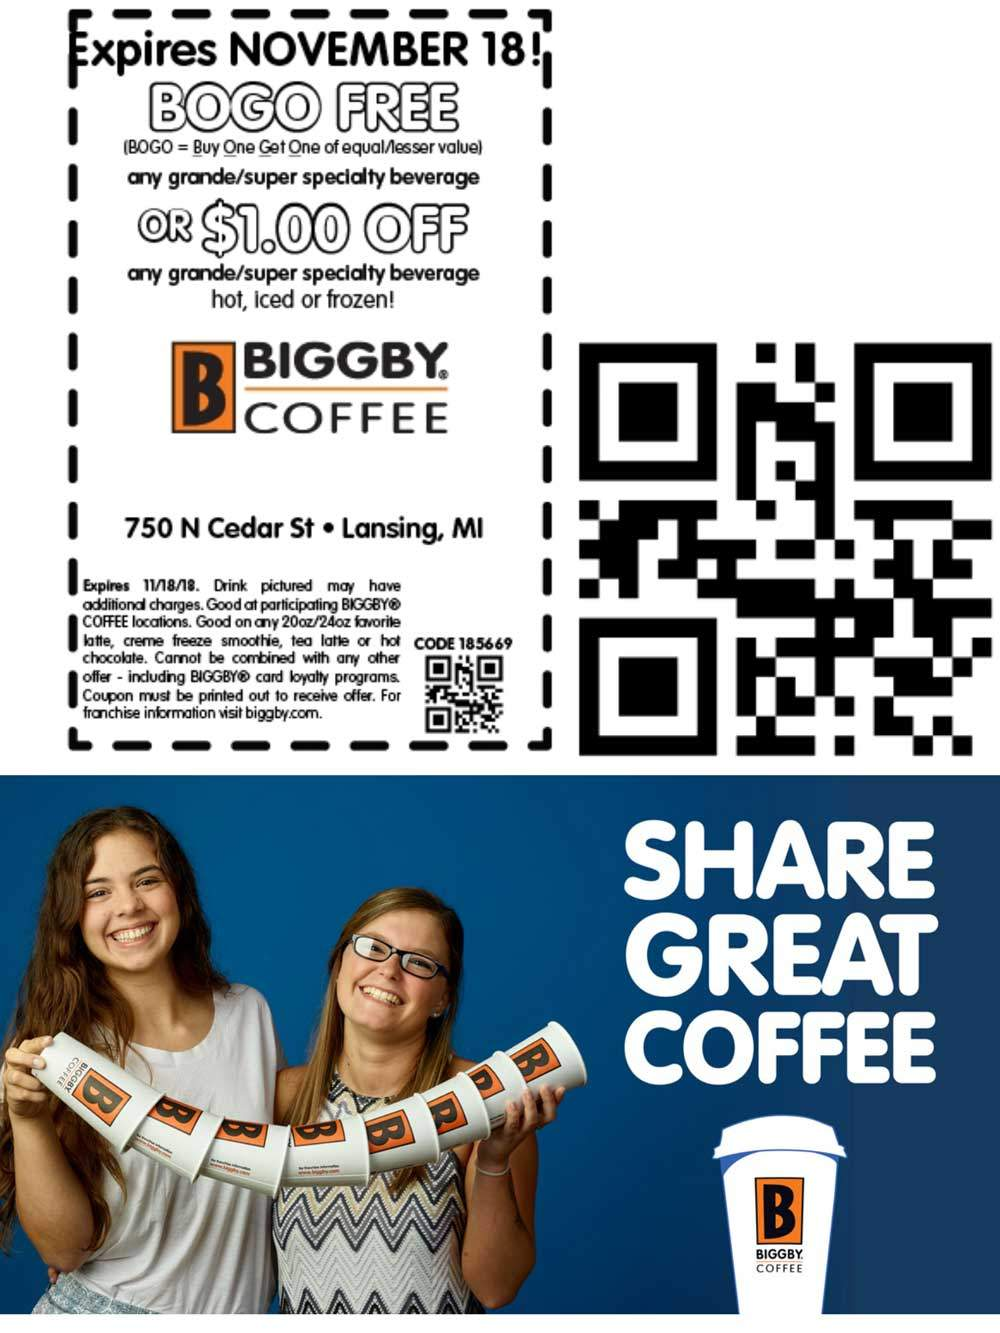 Biggby Coffee coupons & promo code for [April 2020]